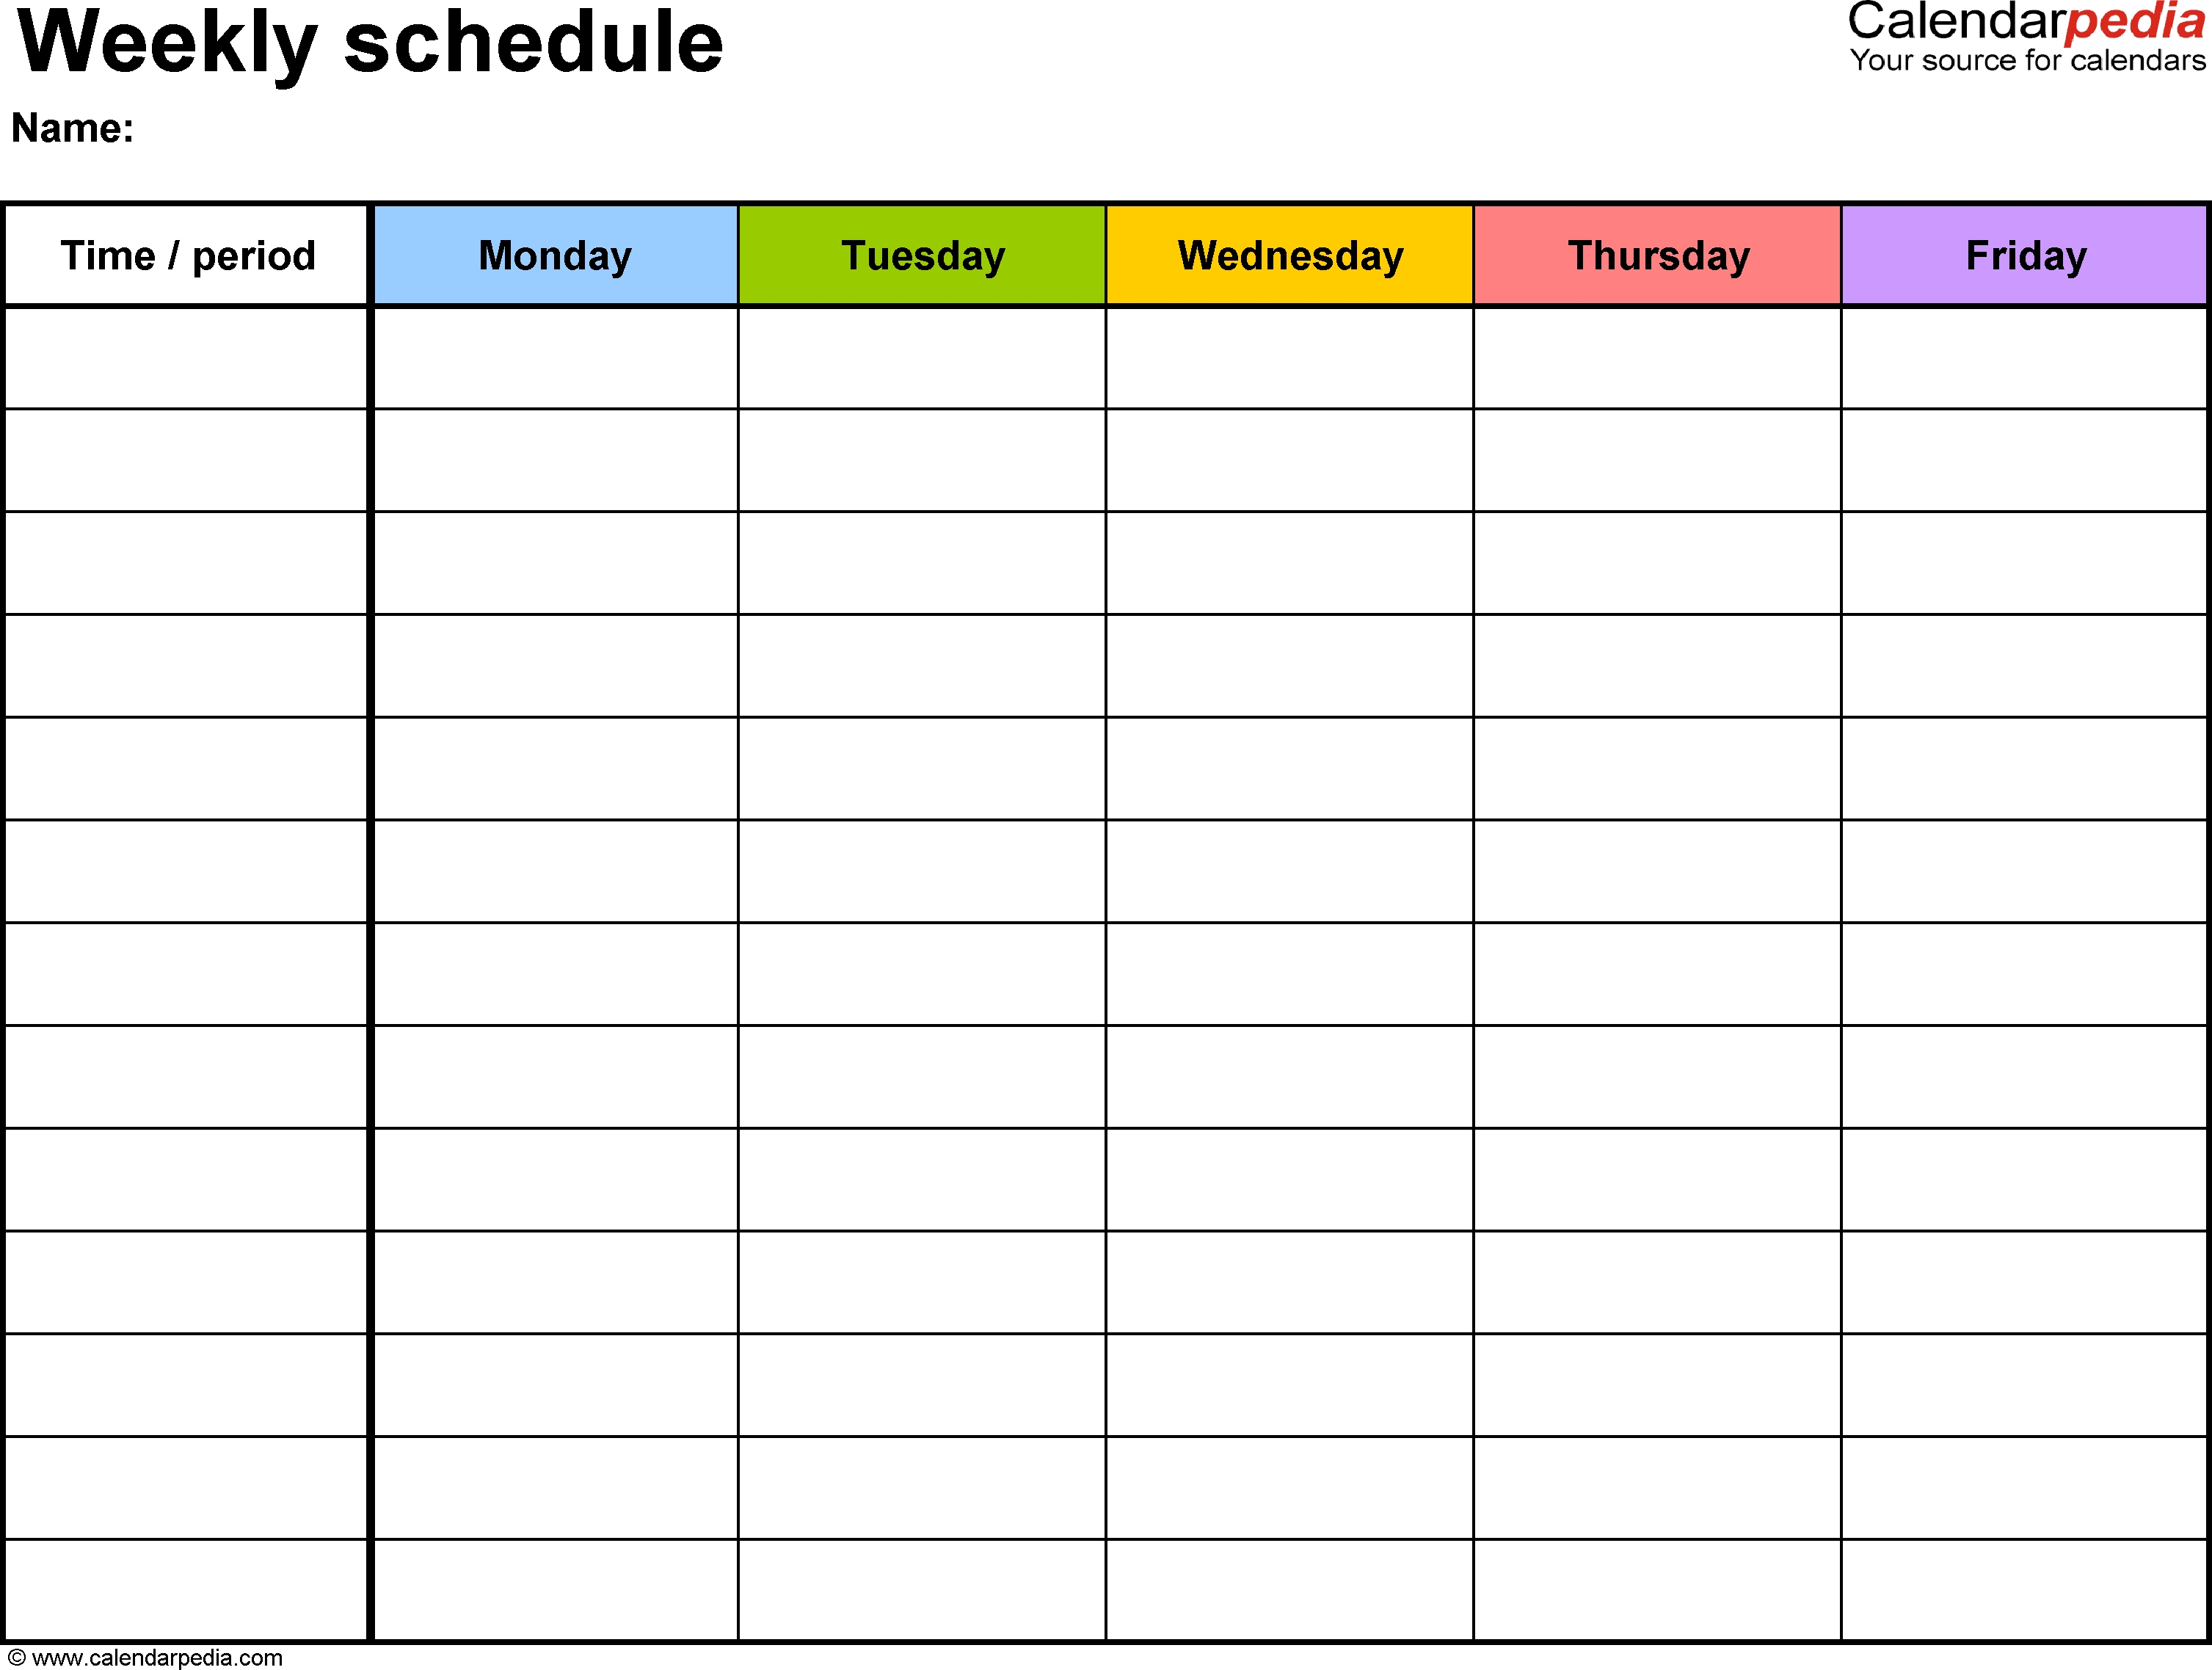 Free Weekly Schedule Templates For Excel - 18 Templates intended for Weekly Schedule Template With Times